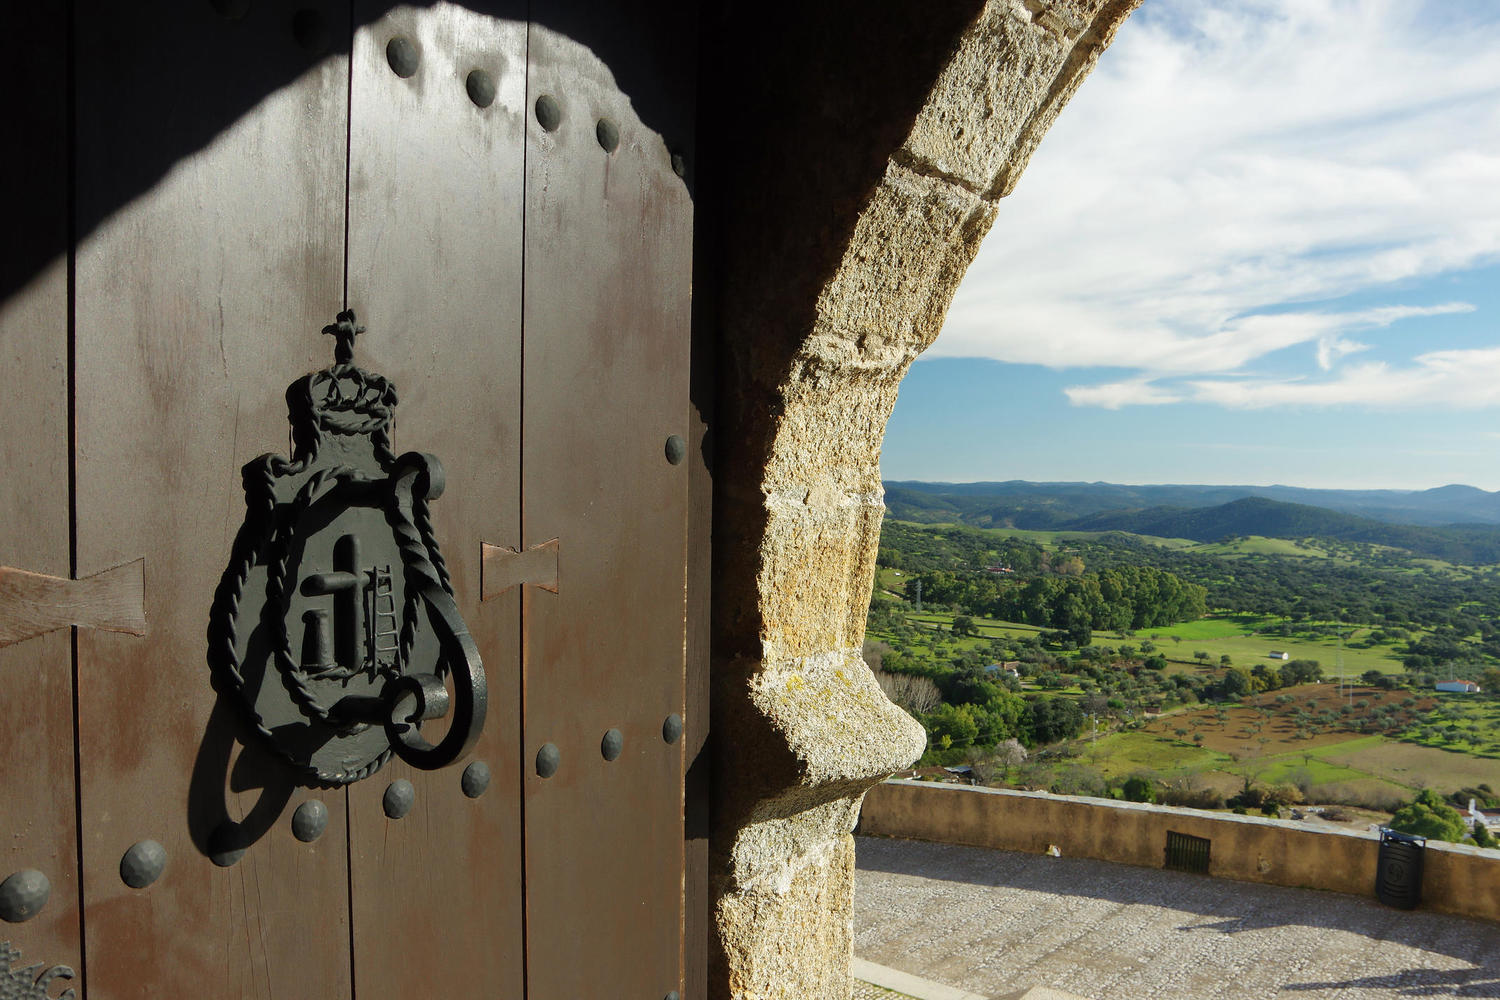 Looking out to the surrounding countryside from Aracena castle